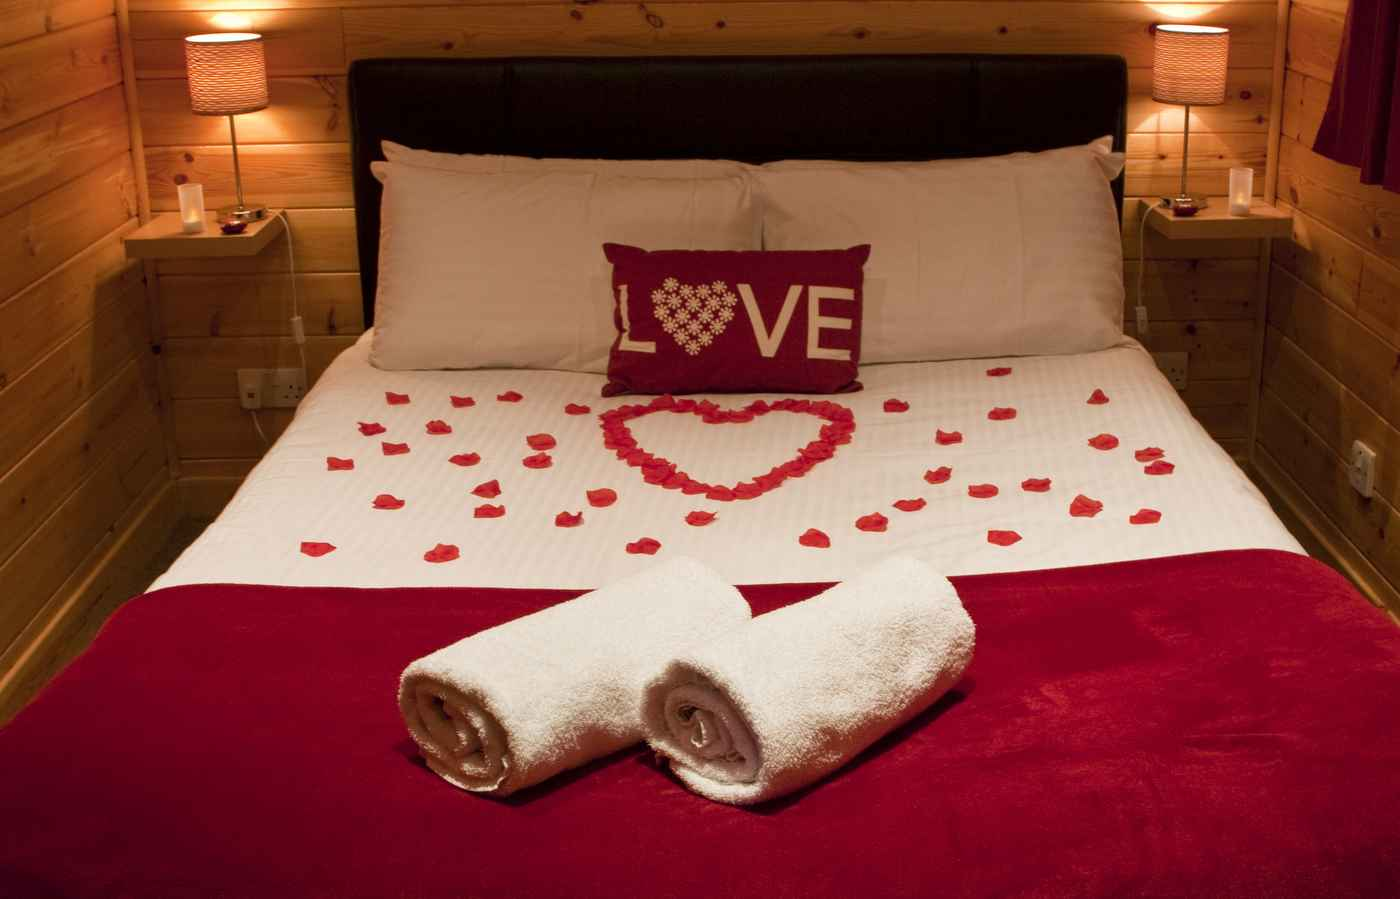 Exchange this voucher for 2 nights in our romantic Love Cabin at Kinnaird Woodland Lodges.